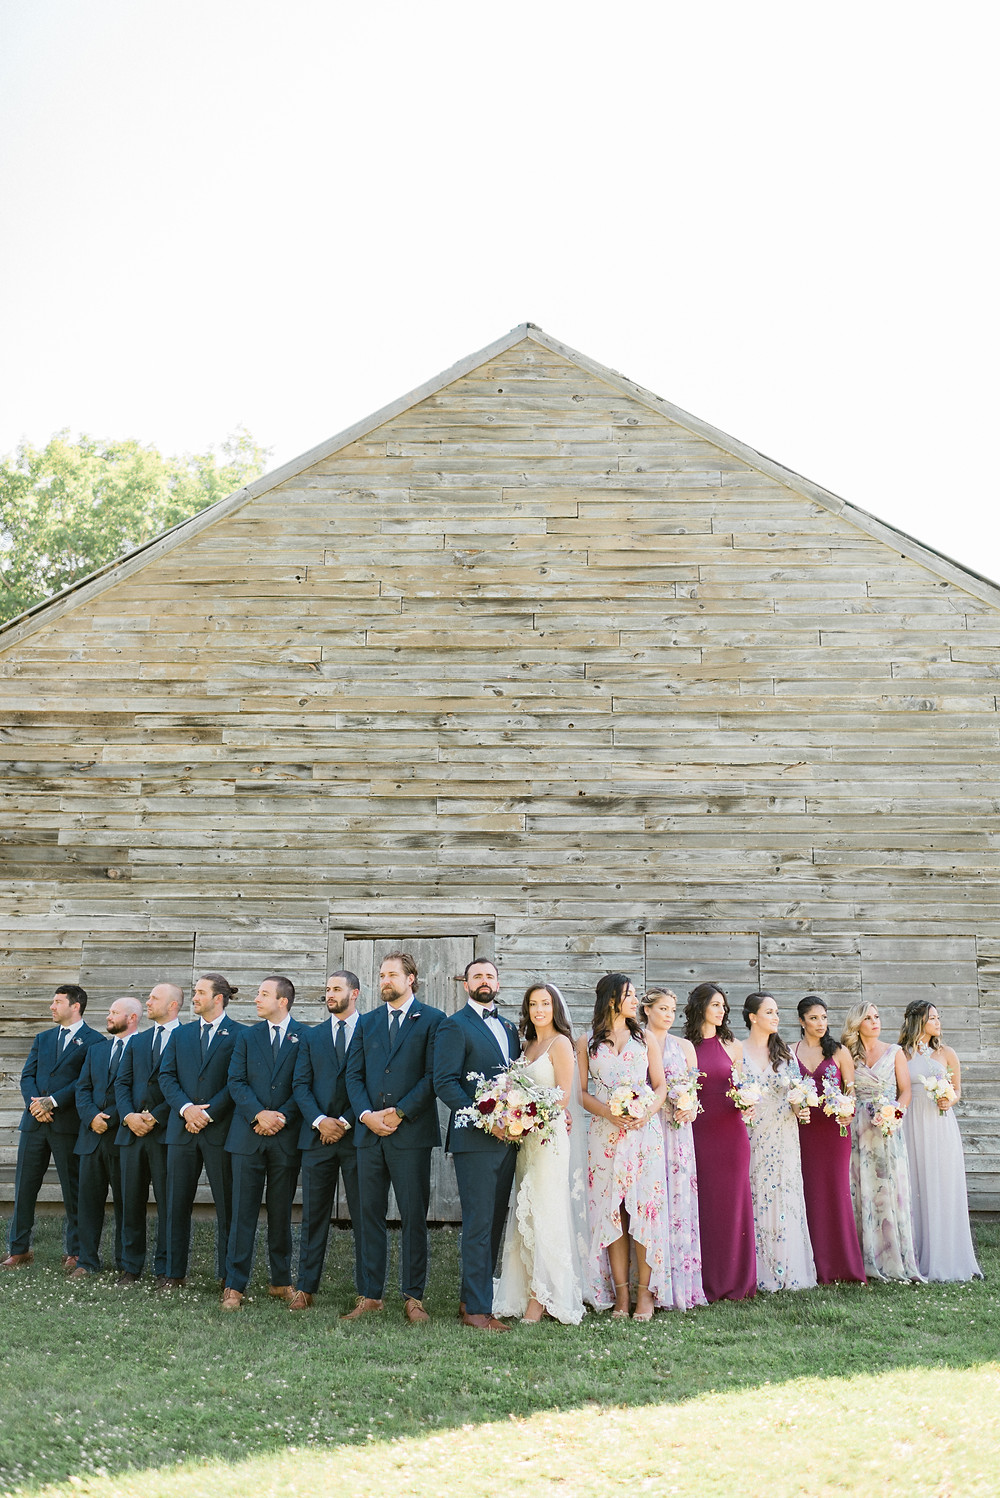 Formal wedding party at Hayfield Barn in the Catskills, NY | Hudson Valley wedding photographer